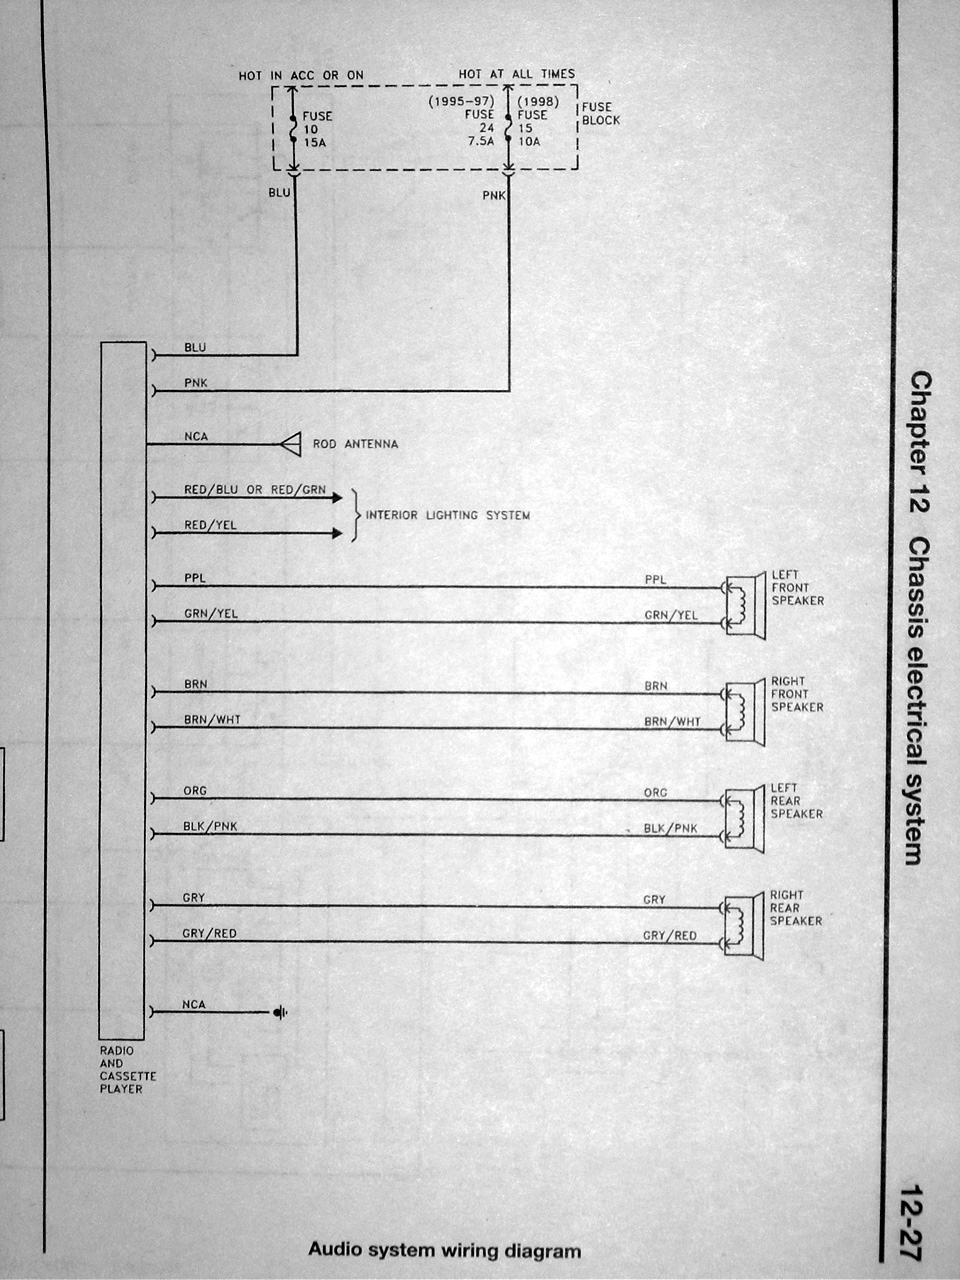 DSC01849 wiring diagram thread *useful info* nissan forum 2000 nissan frontier stereo wiring diagram at gsmx.co